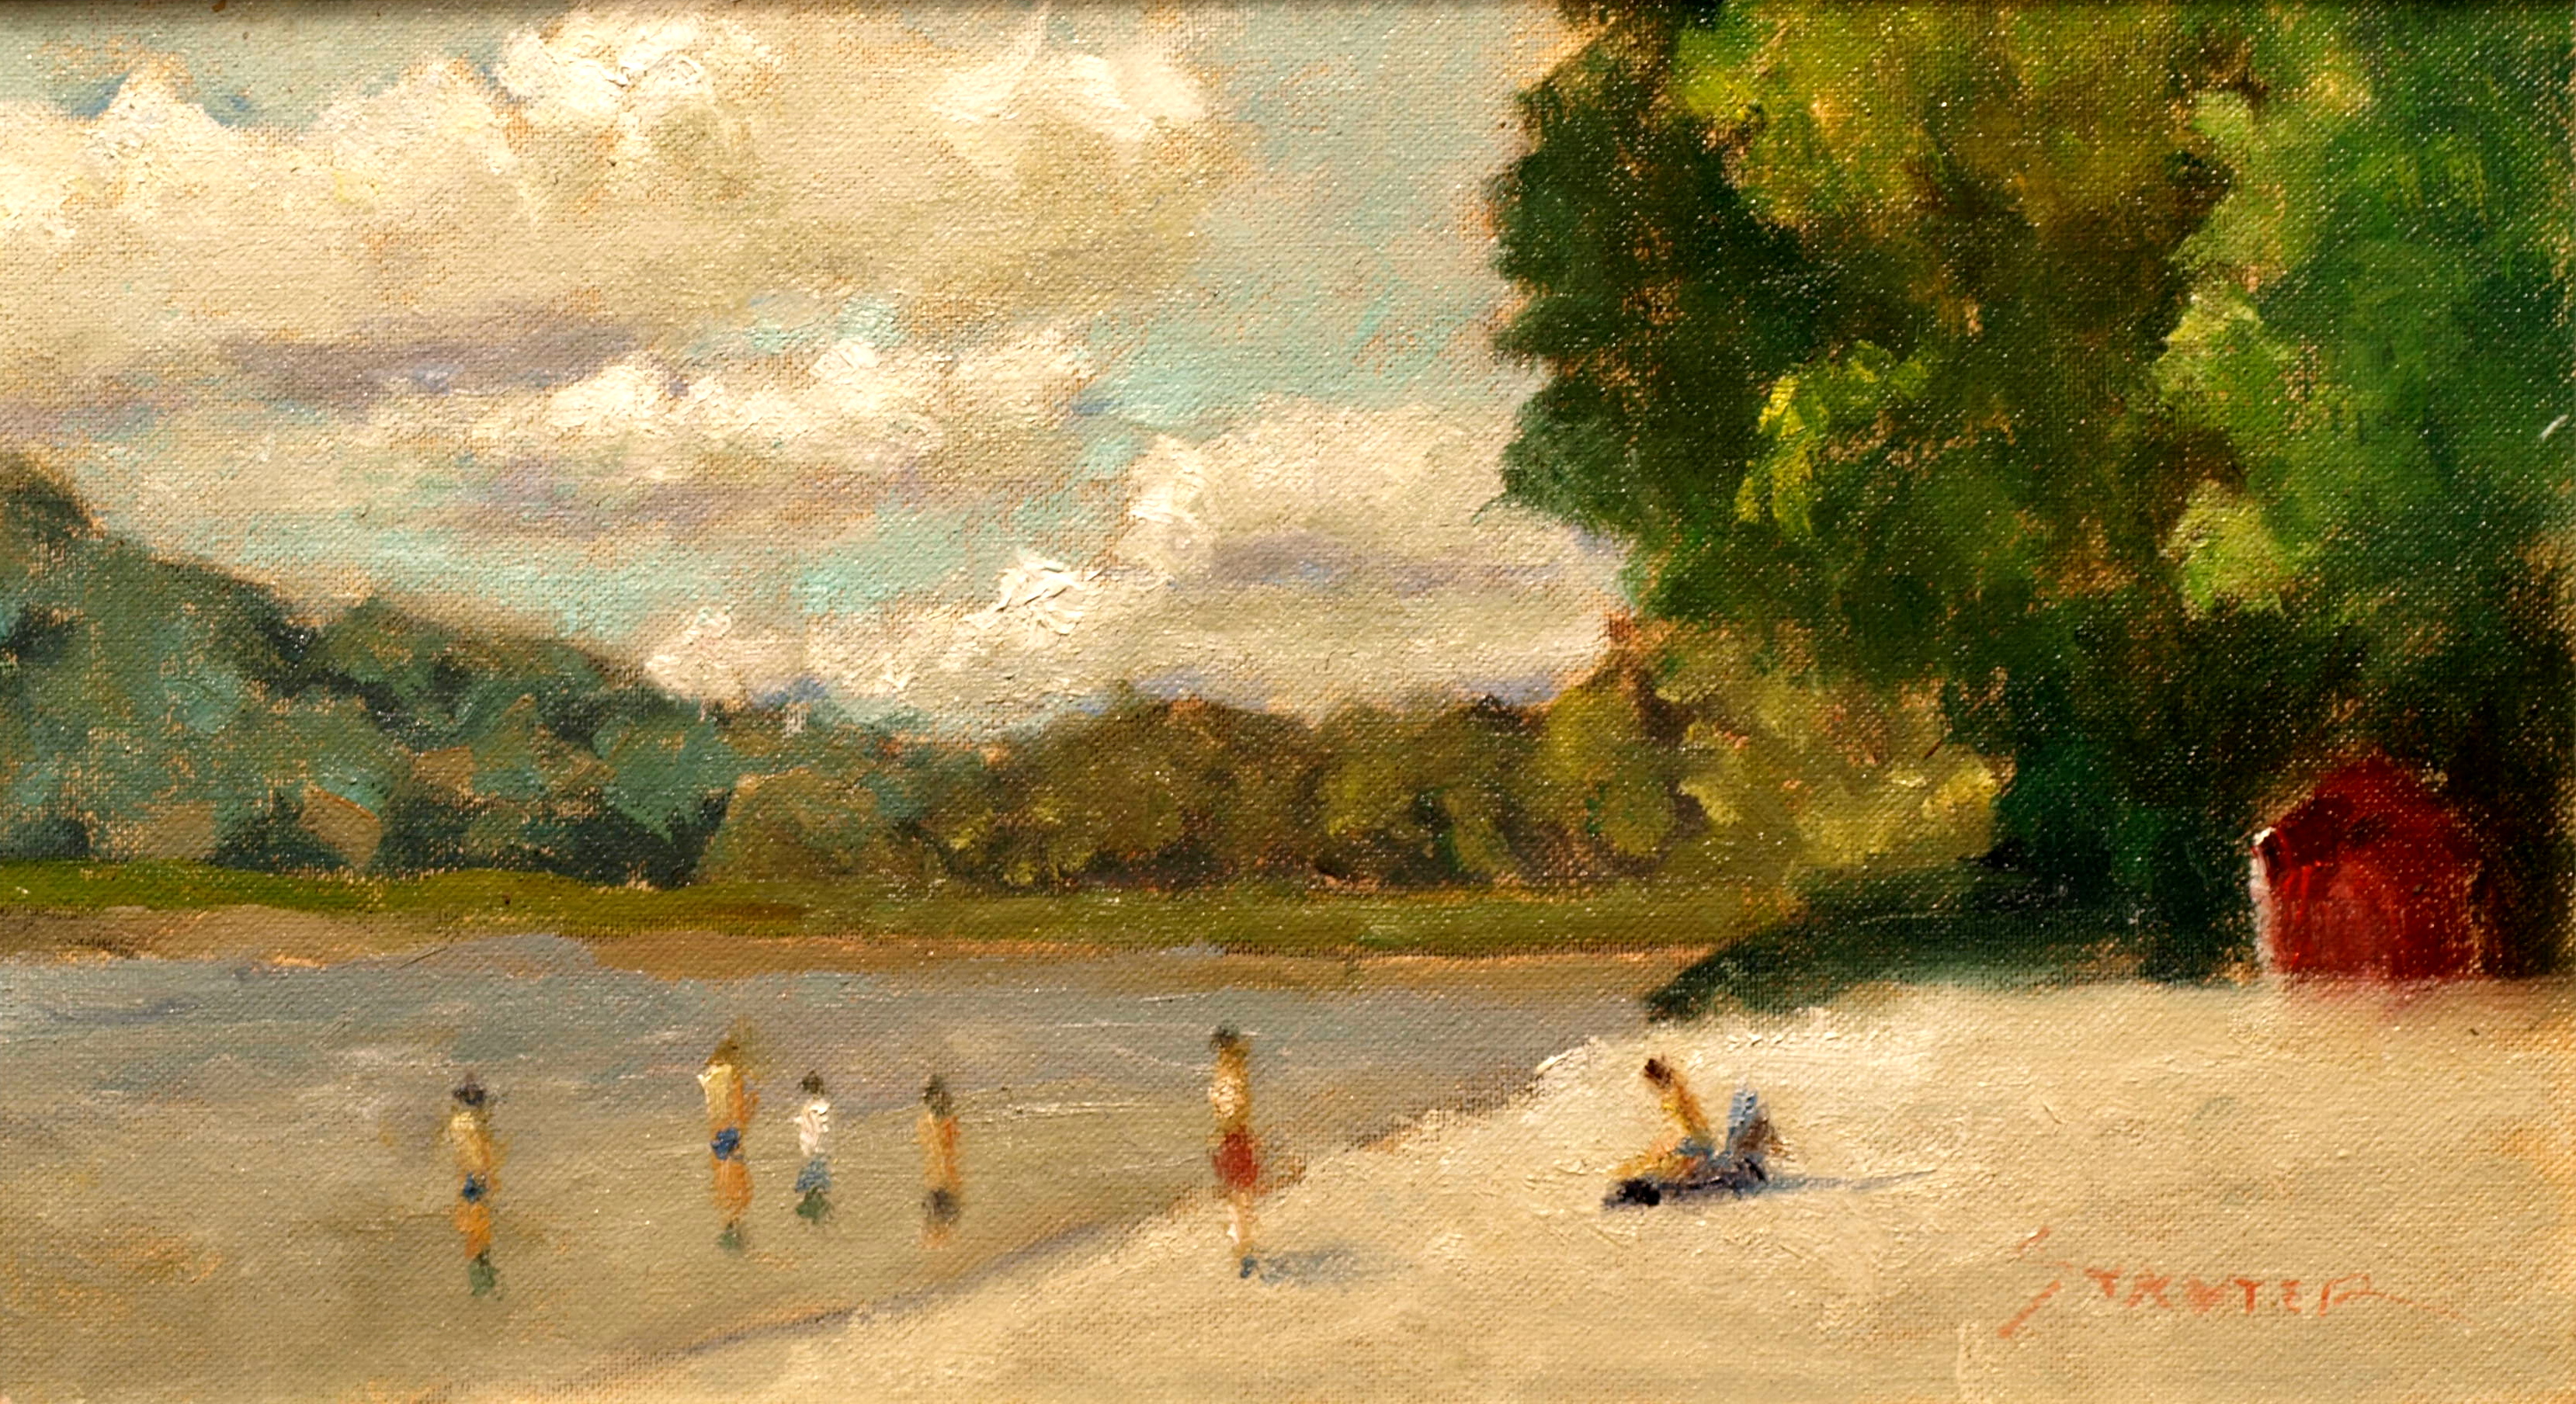 Swimmers at the Town Park, Oil on Canvas on Panel, 8 x 14 Inches, by Richard Stalter, $220